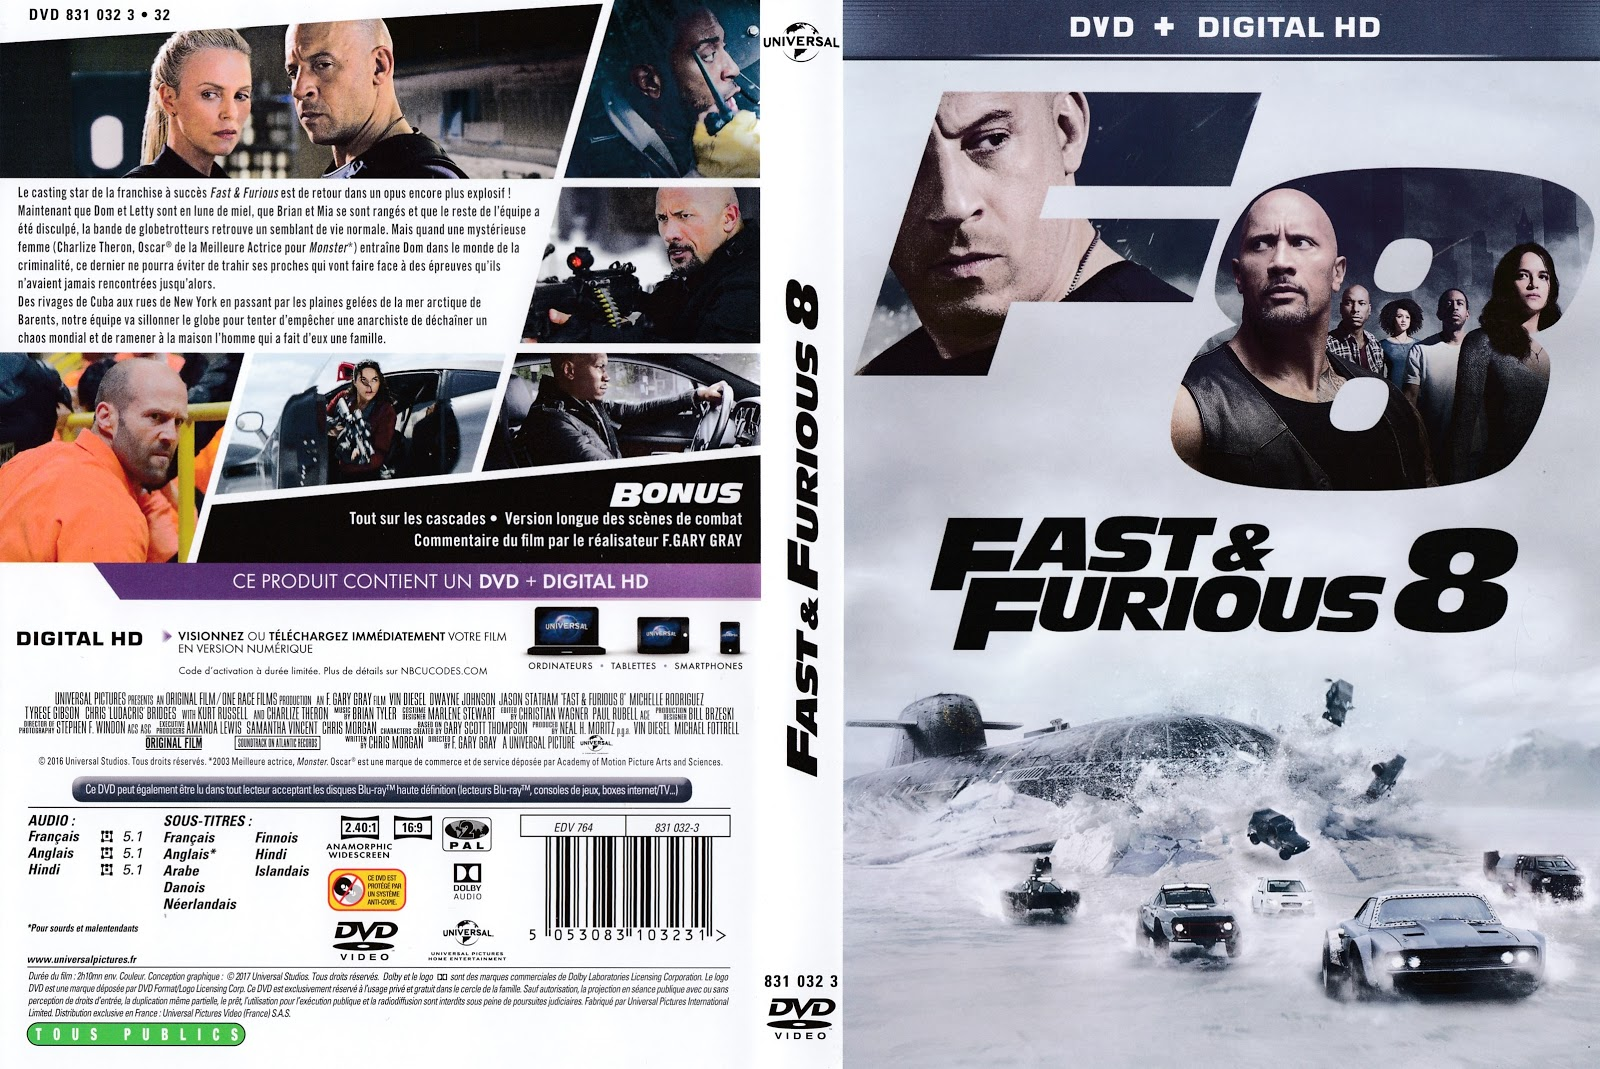 jaquette dvd jaquette dvd fast and furious 8. Black Bedroom Furniture Sets. Home Design Ideas